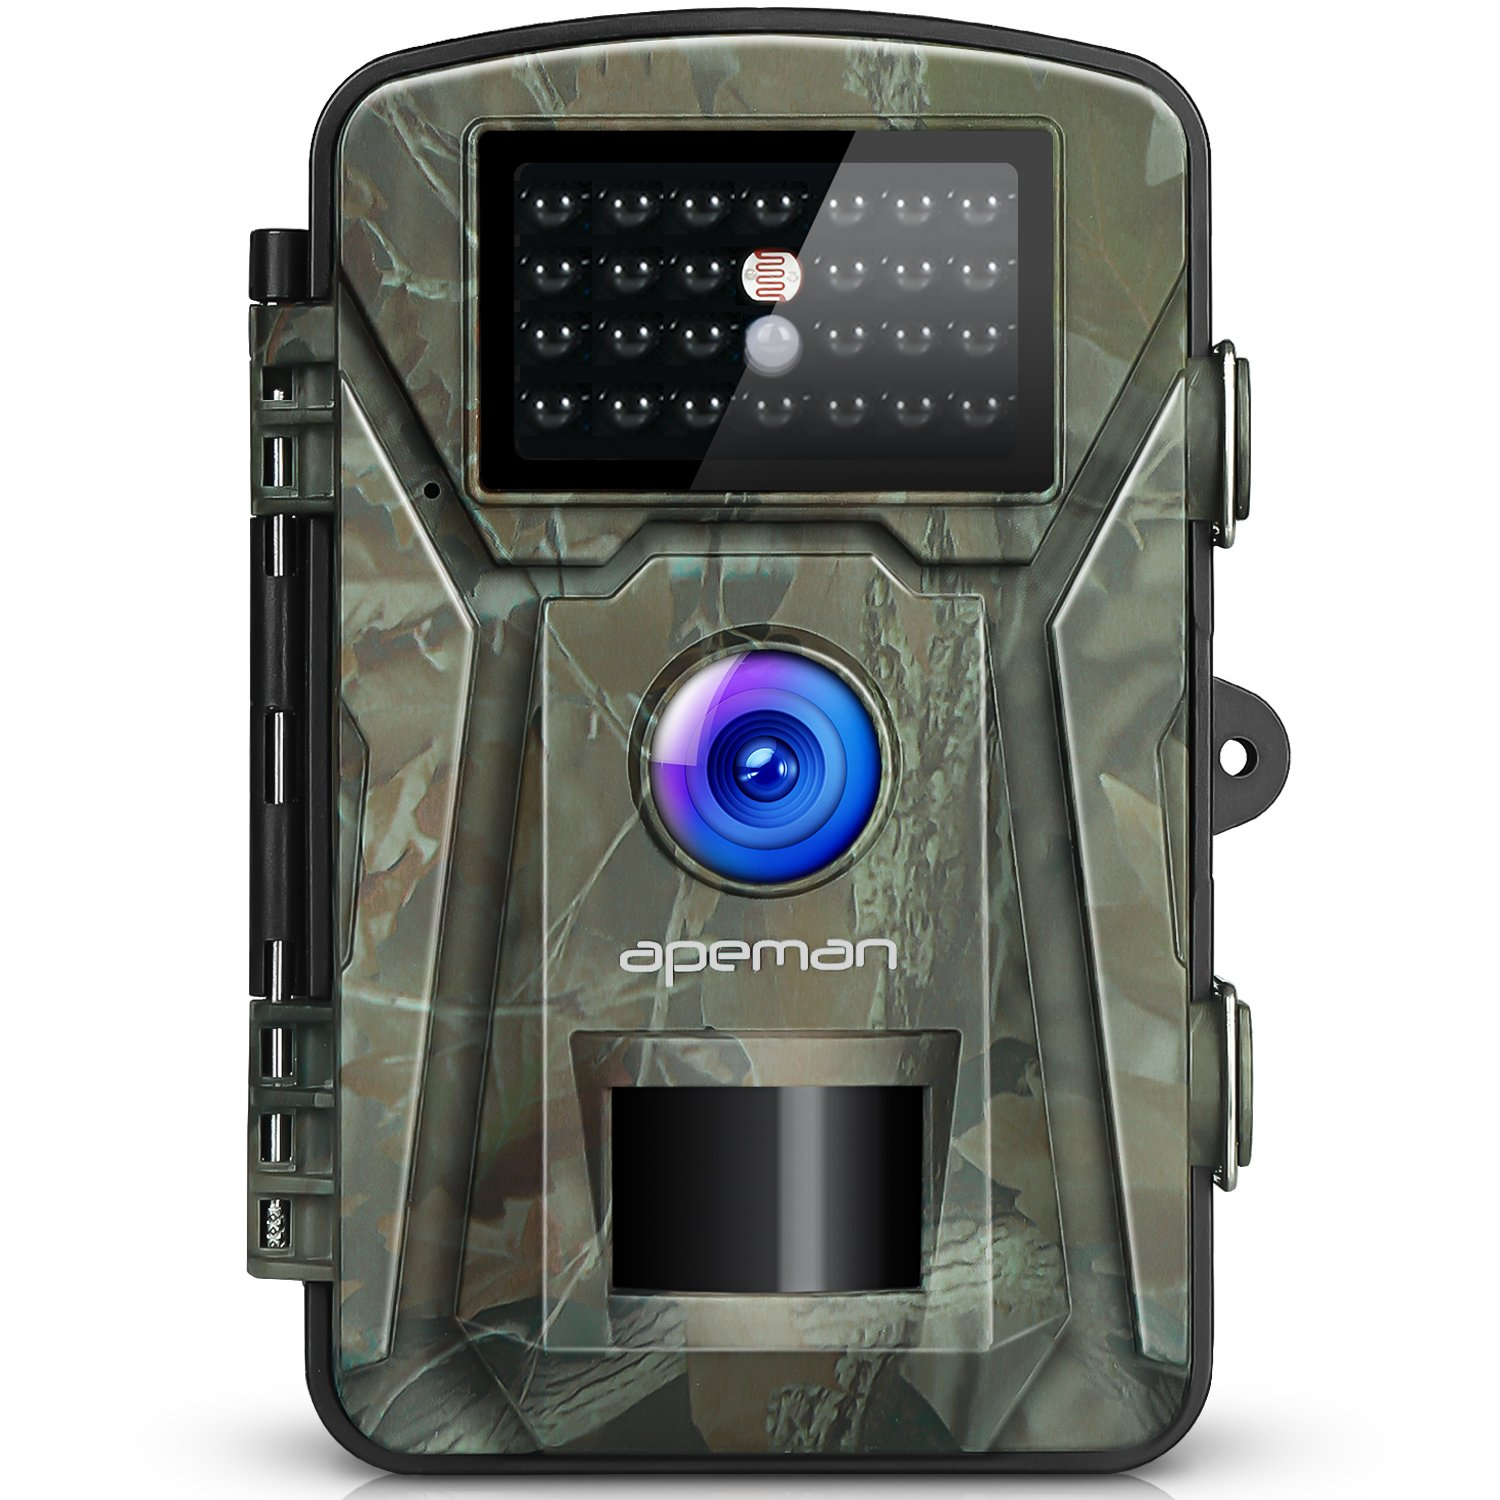 【New Version】 APEMAN Trail Camera 12MP 1080P 2.4″ LCD Game&Hunting Camera with 940nm Upgrading IR LEDs Night Vision up to 65ft/20m IP66 Spray Water Protected Design